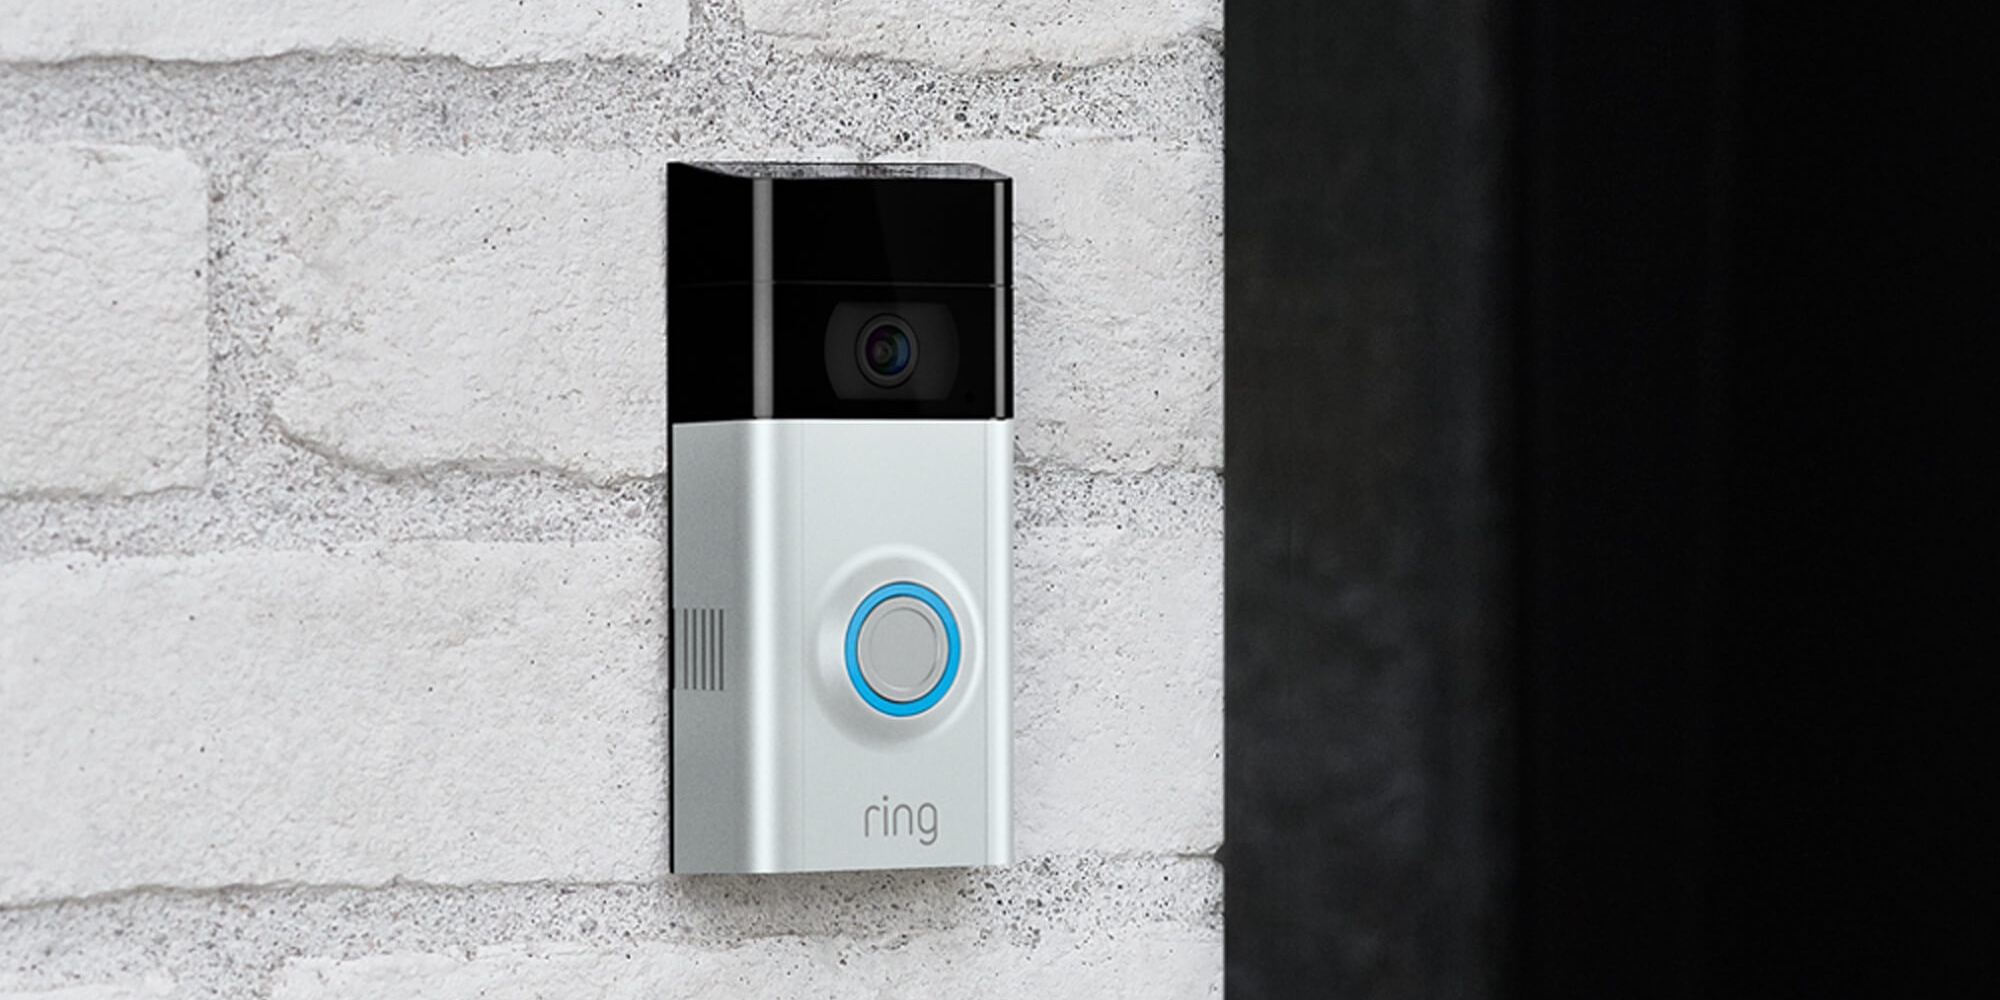 Ring Video Doorbell 2 hits Black Friday pricing at $140 + FREE Echo Dot ($250 value)